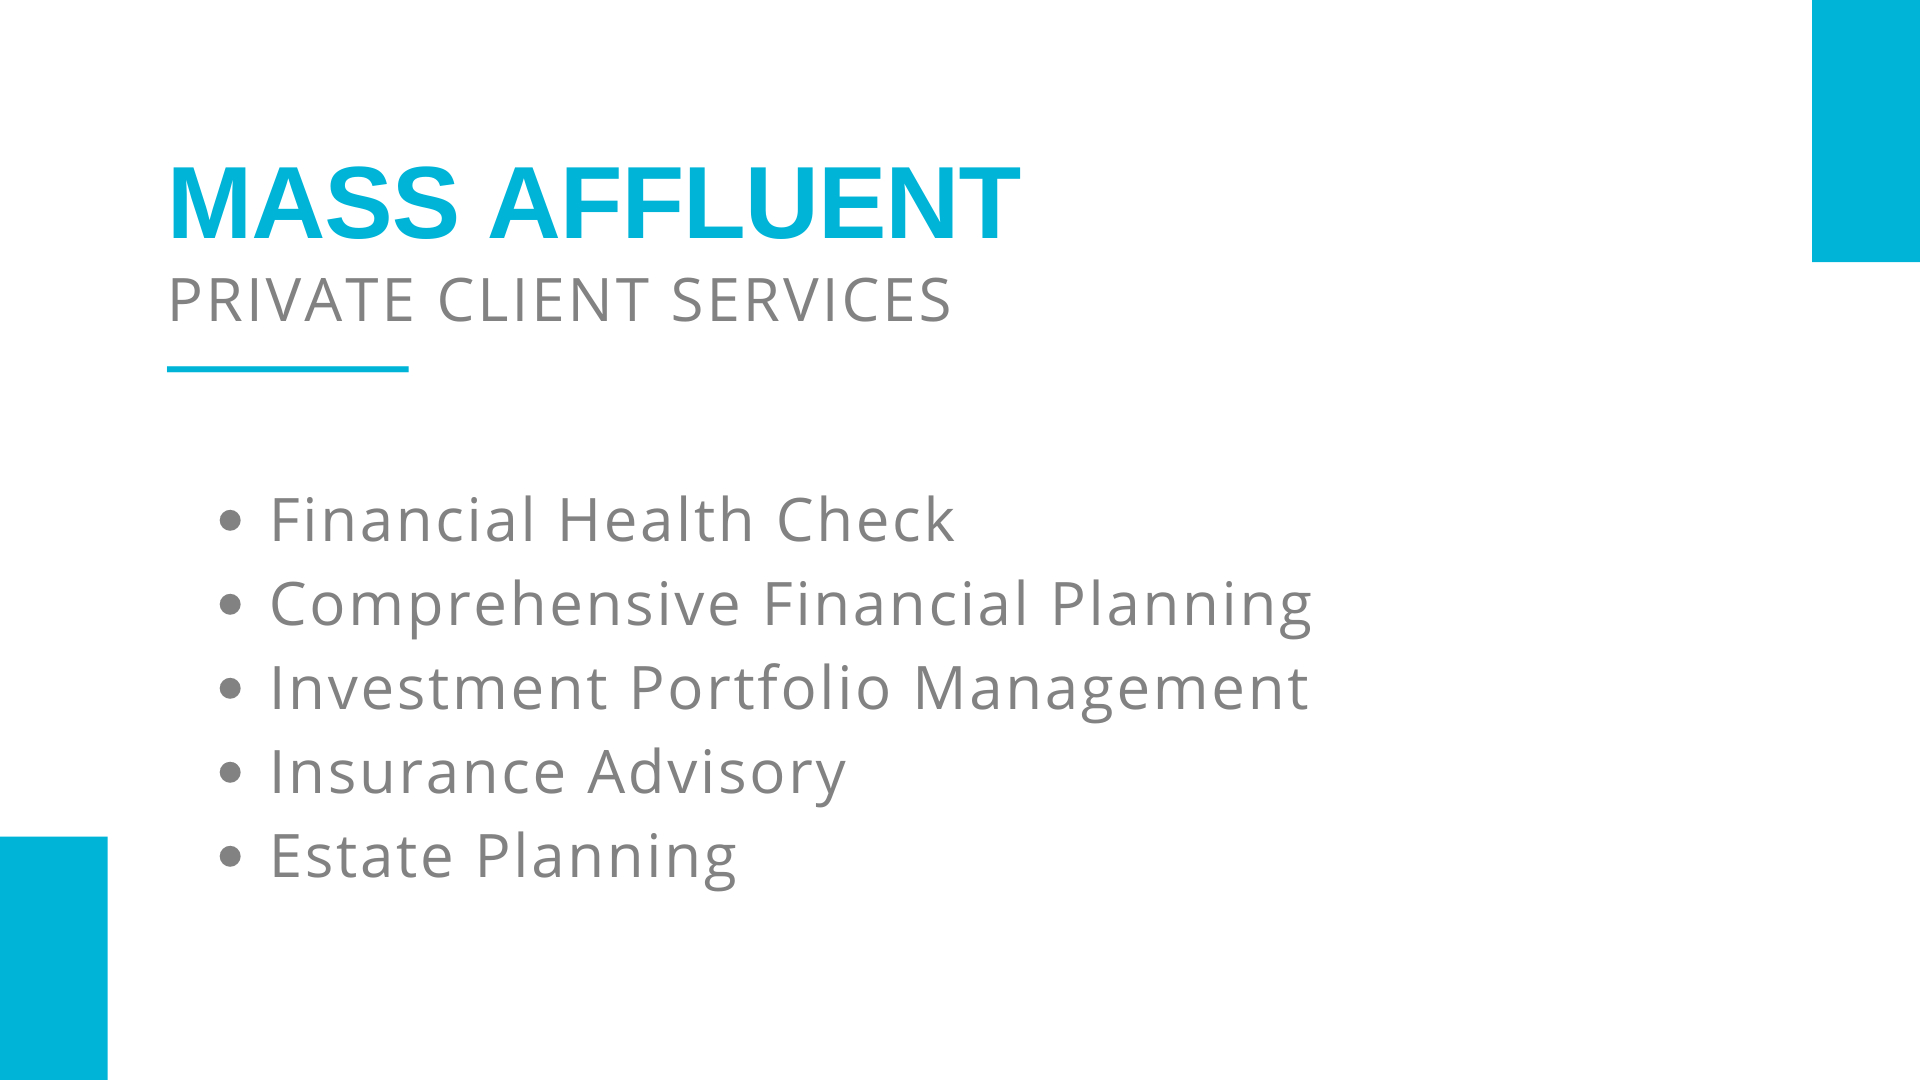 Private Client Services